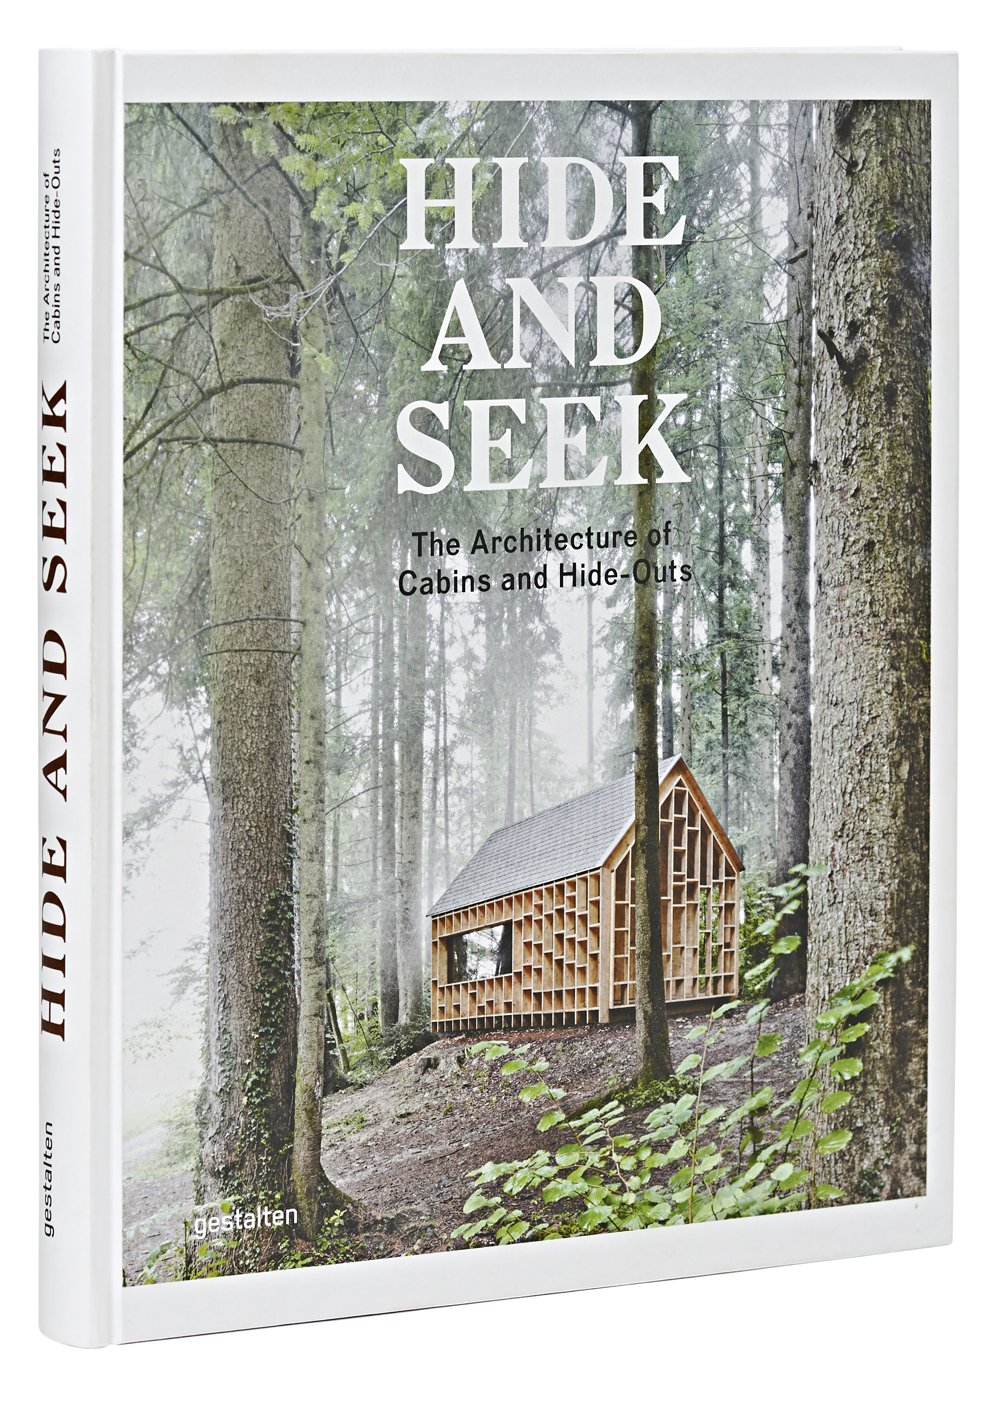 Hide and Seek: The Architecture of Cabins and Hideouts: Sofia Borges, Sven  Ehmann, Robert Klanten: 8601404721229: Amazon.com: Books